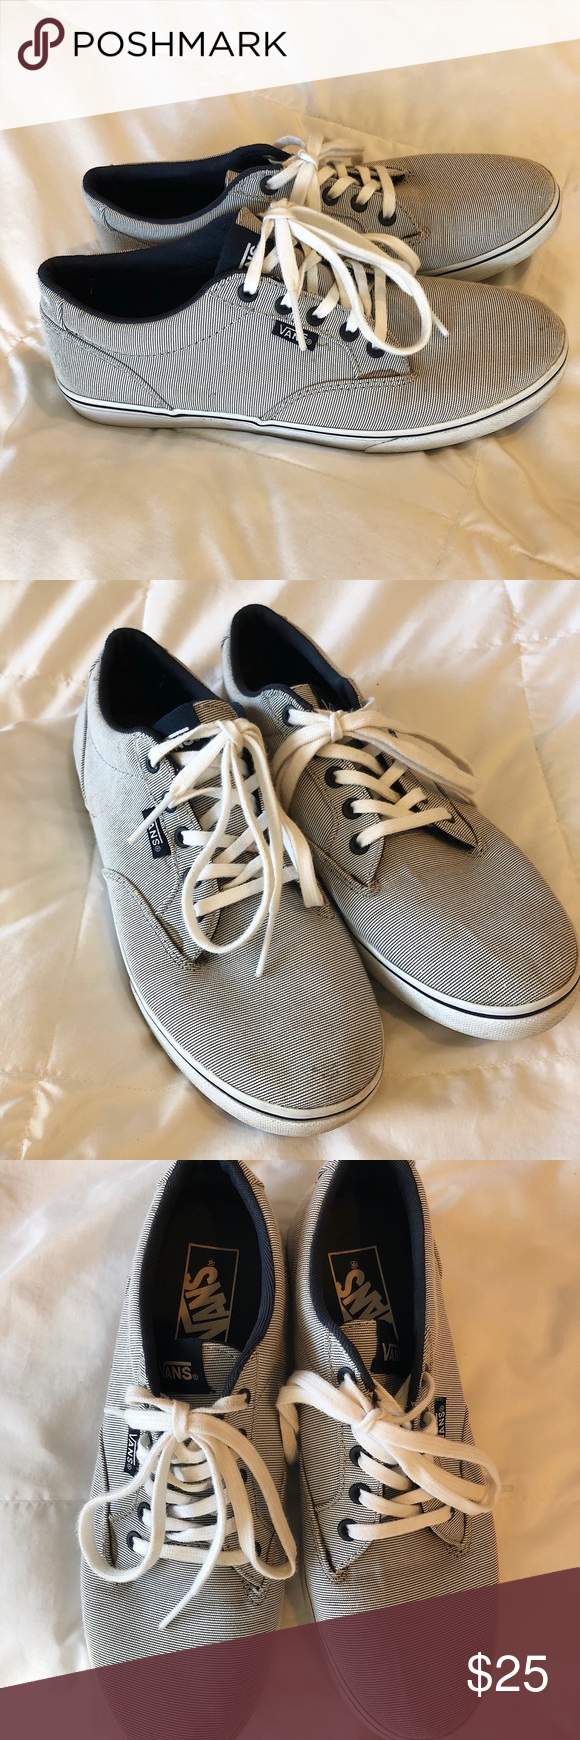 a131a04bed Vans women s Atwood low skate shoe Grey and white stripes. Currently out of  stock on the vans website. Used condition. The shoes are dirty (as shown in  ...